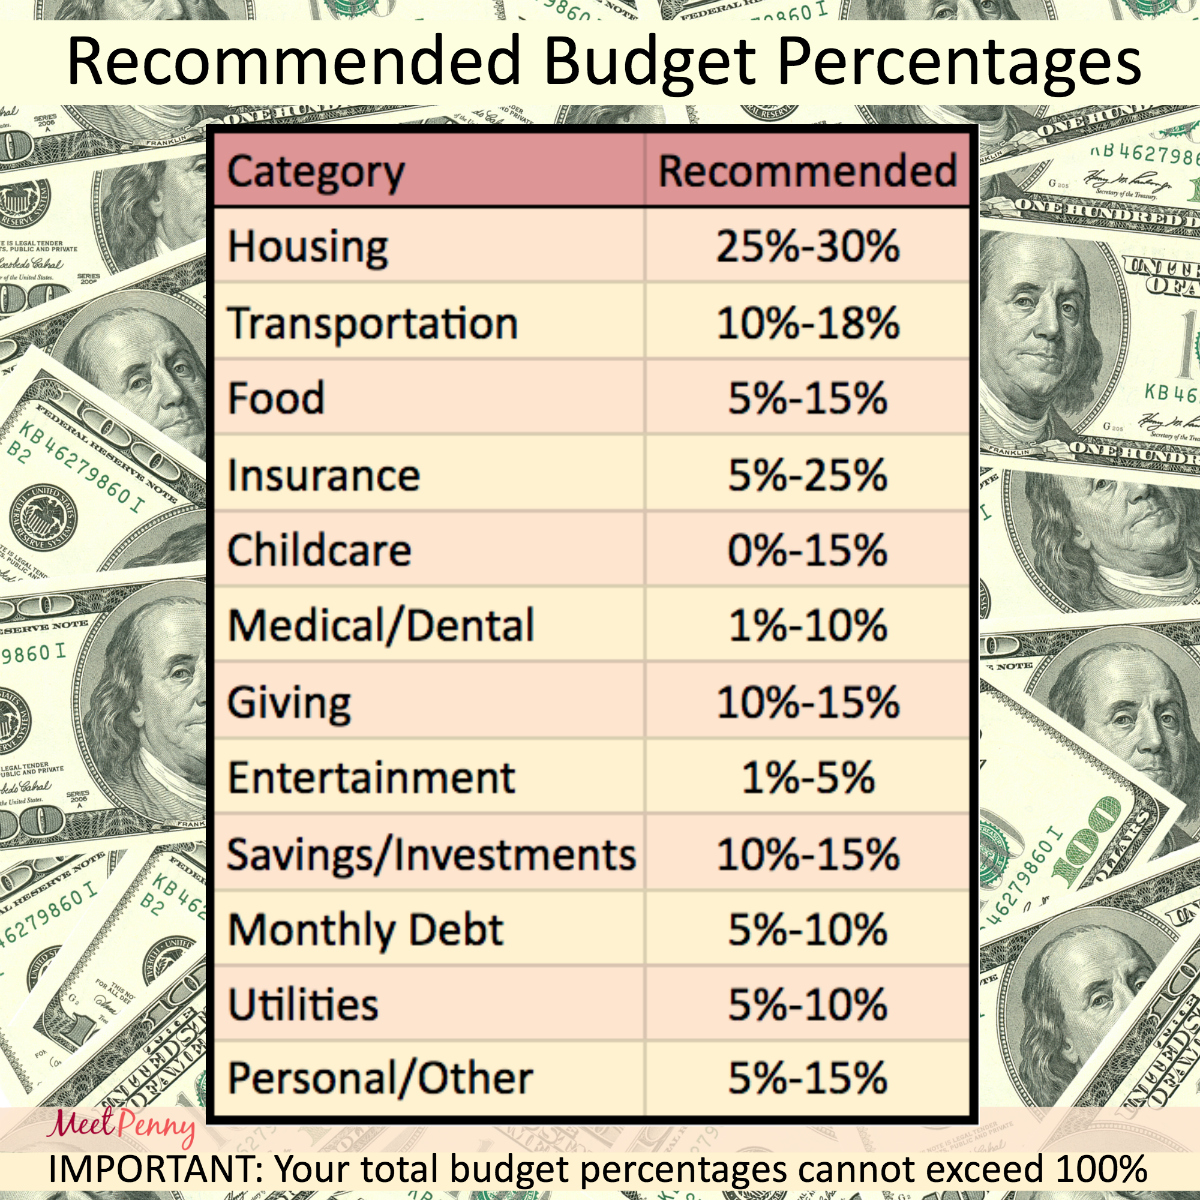 Comprehensive Guide To Budgeting. Including Recommended Budget Percentages  And Free Excel Budget Template.